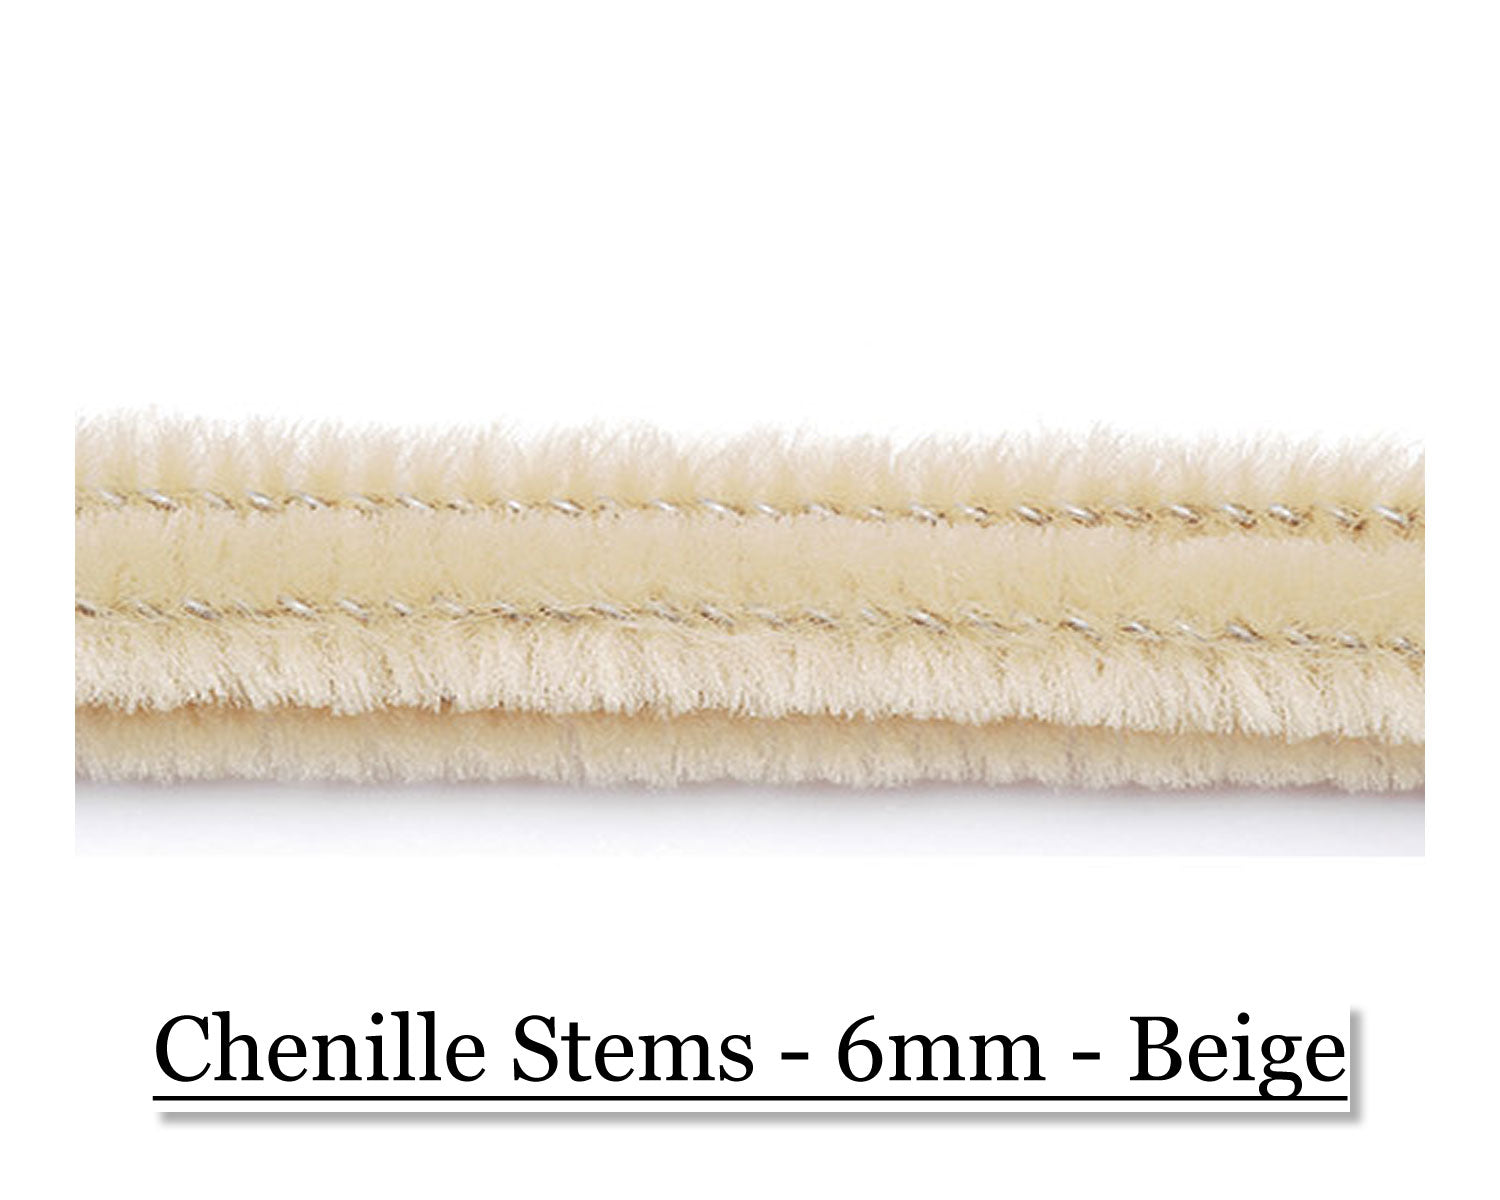 Chenille Stems - 6mm - Beige